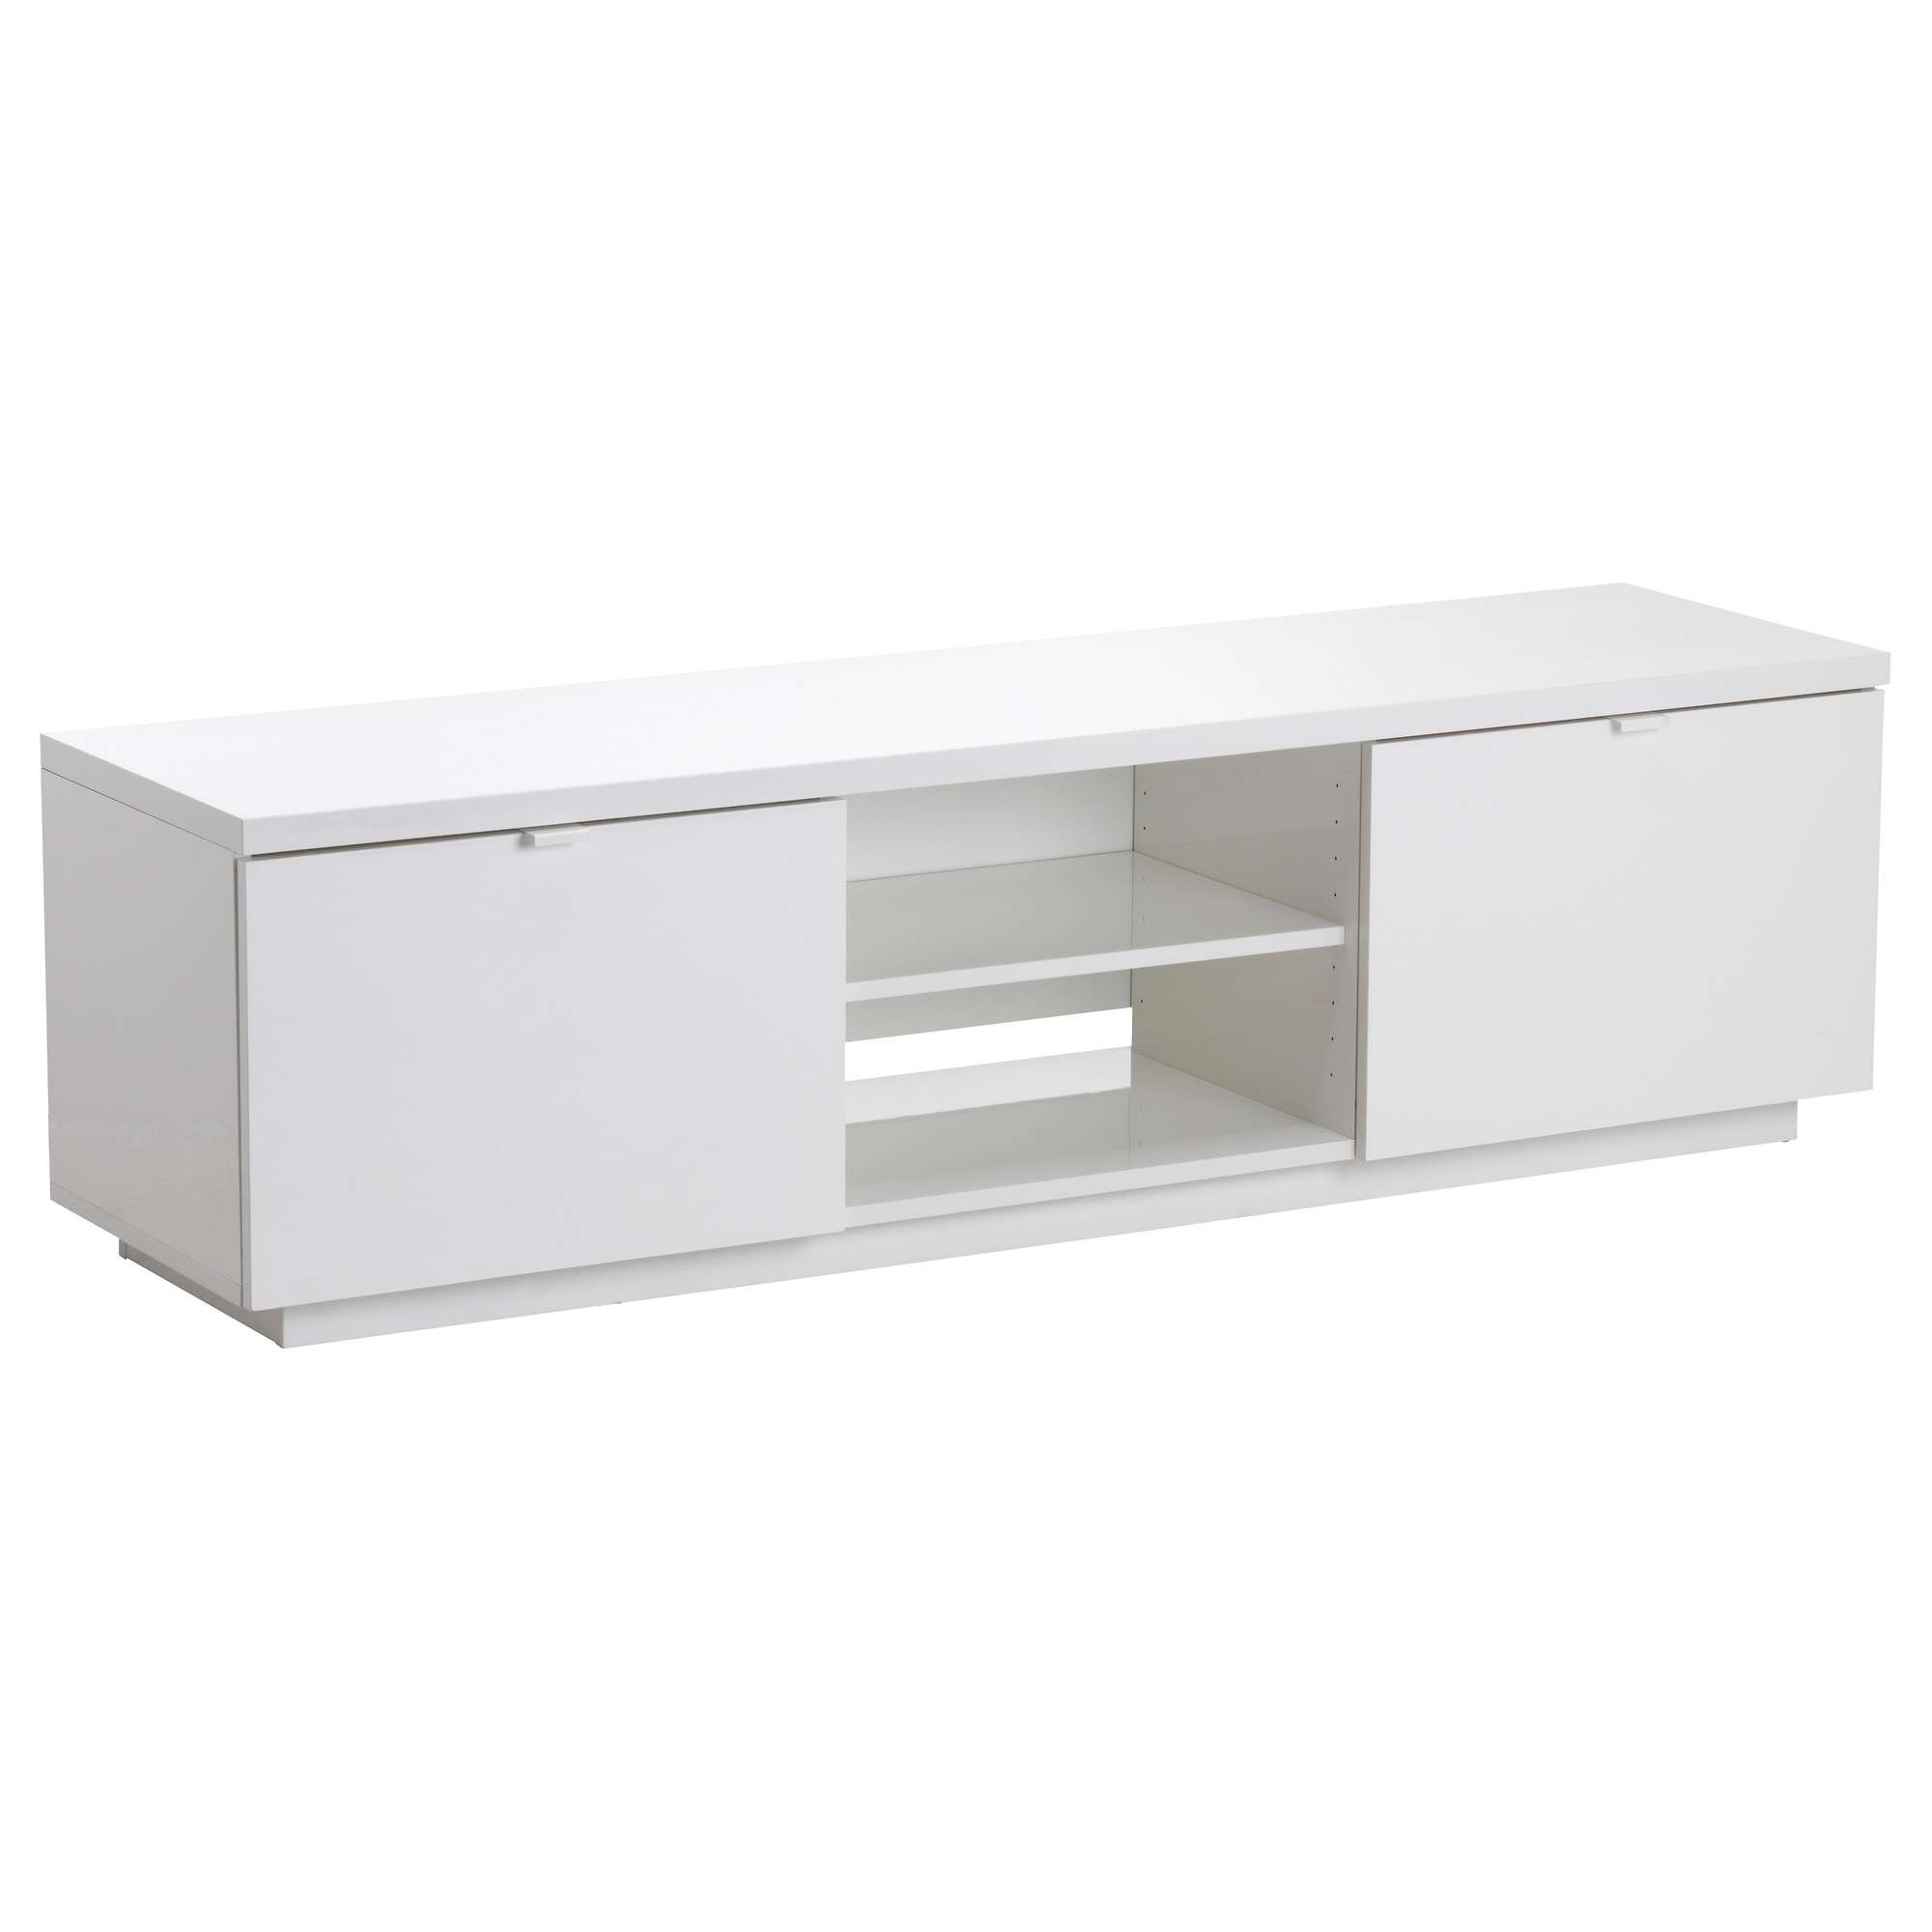 Byås Tv Bench High Gloss White 160X42X45 Cm – Ikea With Regard To White Gloss Corner Tv Stands (View 2 of 15)